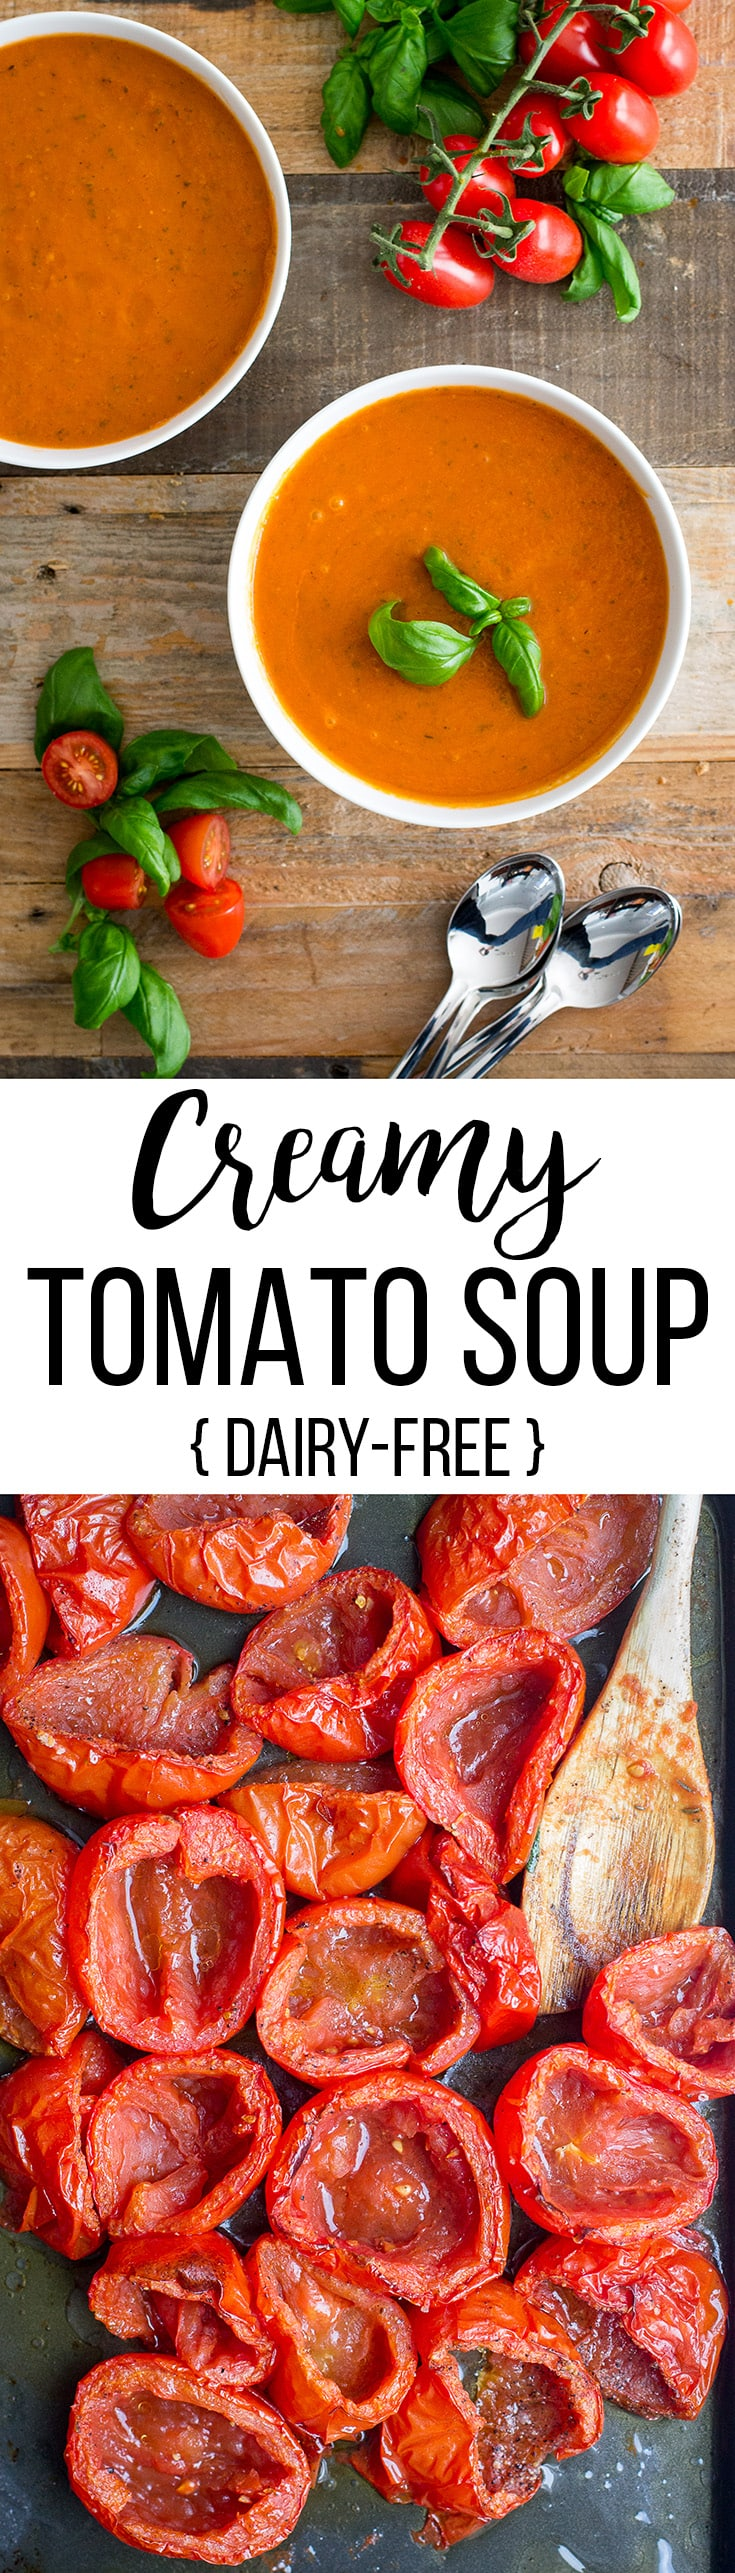 Creamy roasted tomato basil soup   A simple dairy-free recipe for the best bowl of comfort food. #tomatosoup #dairyfree